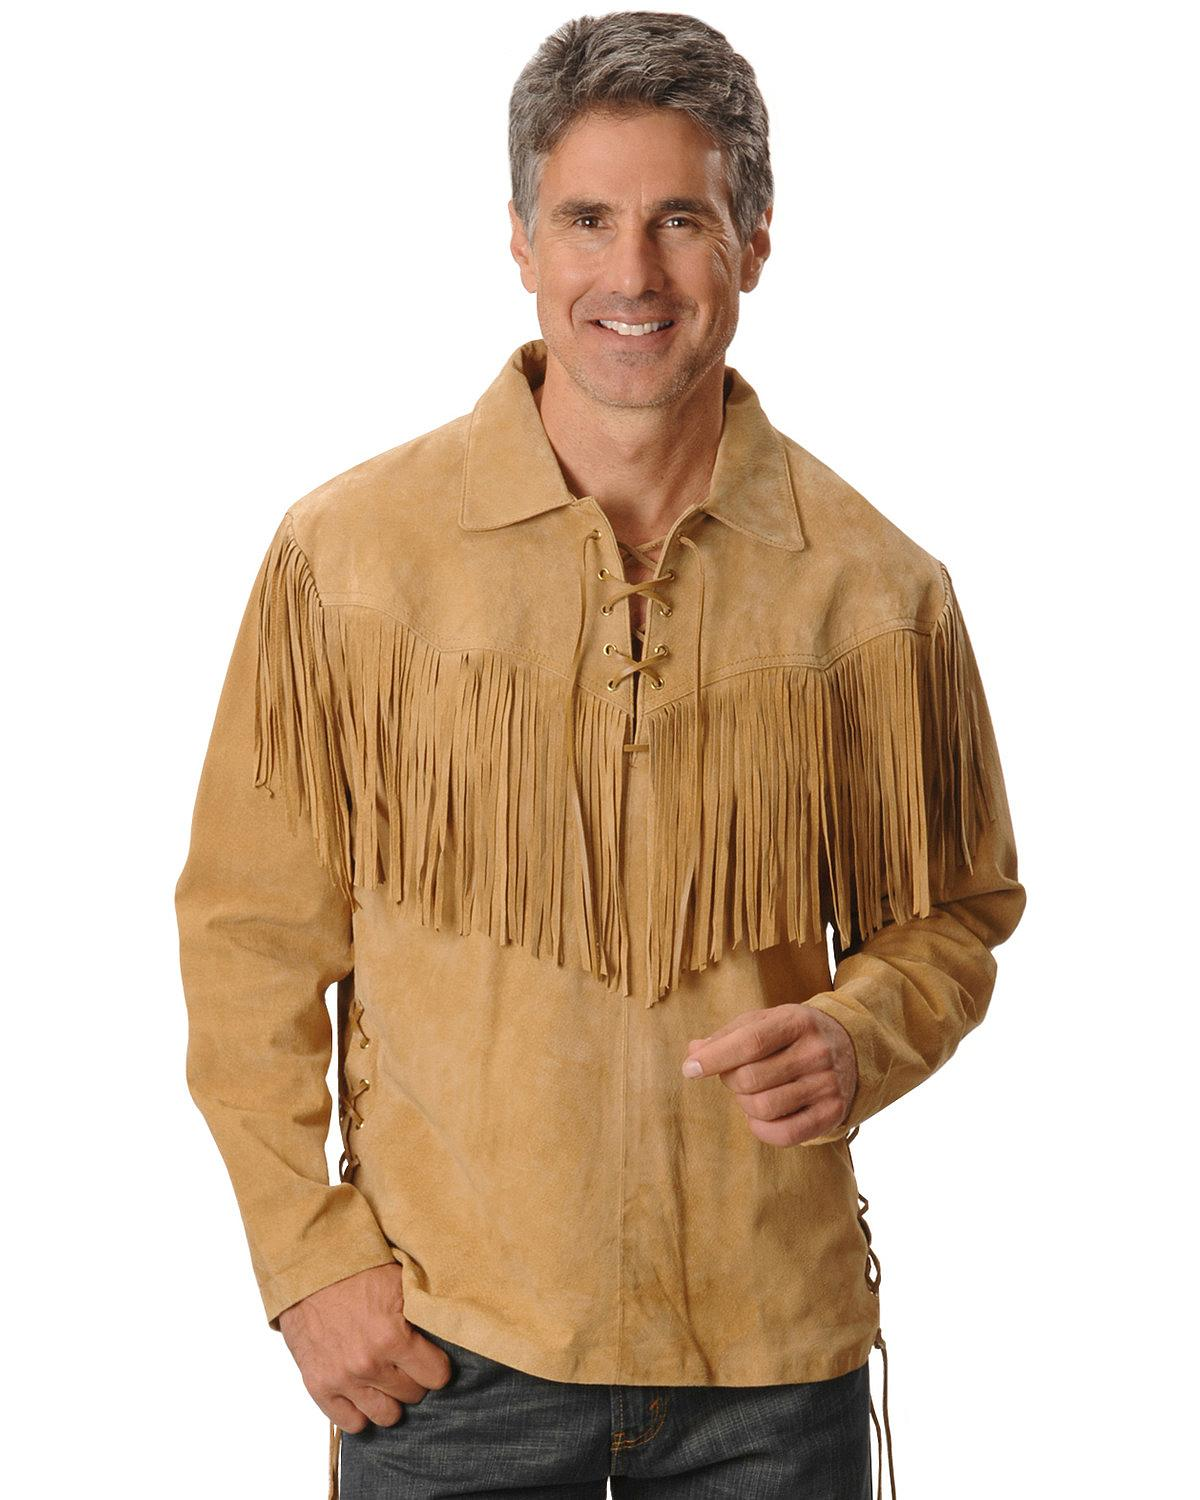 Scully men 39 s fringed boar suede leather shirt 5 86 ebay for Leather jacket and shirt